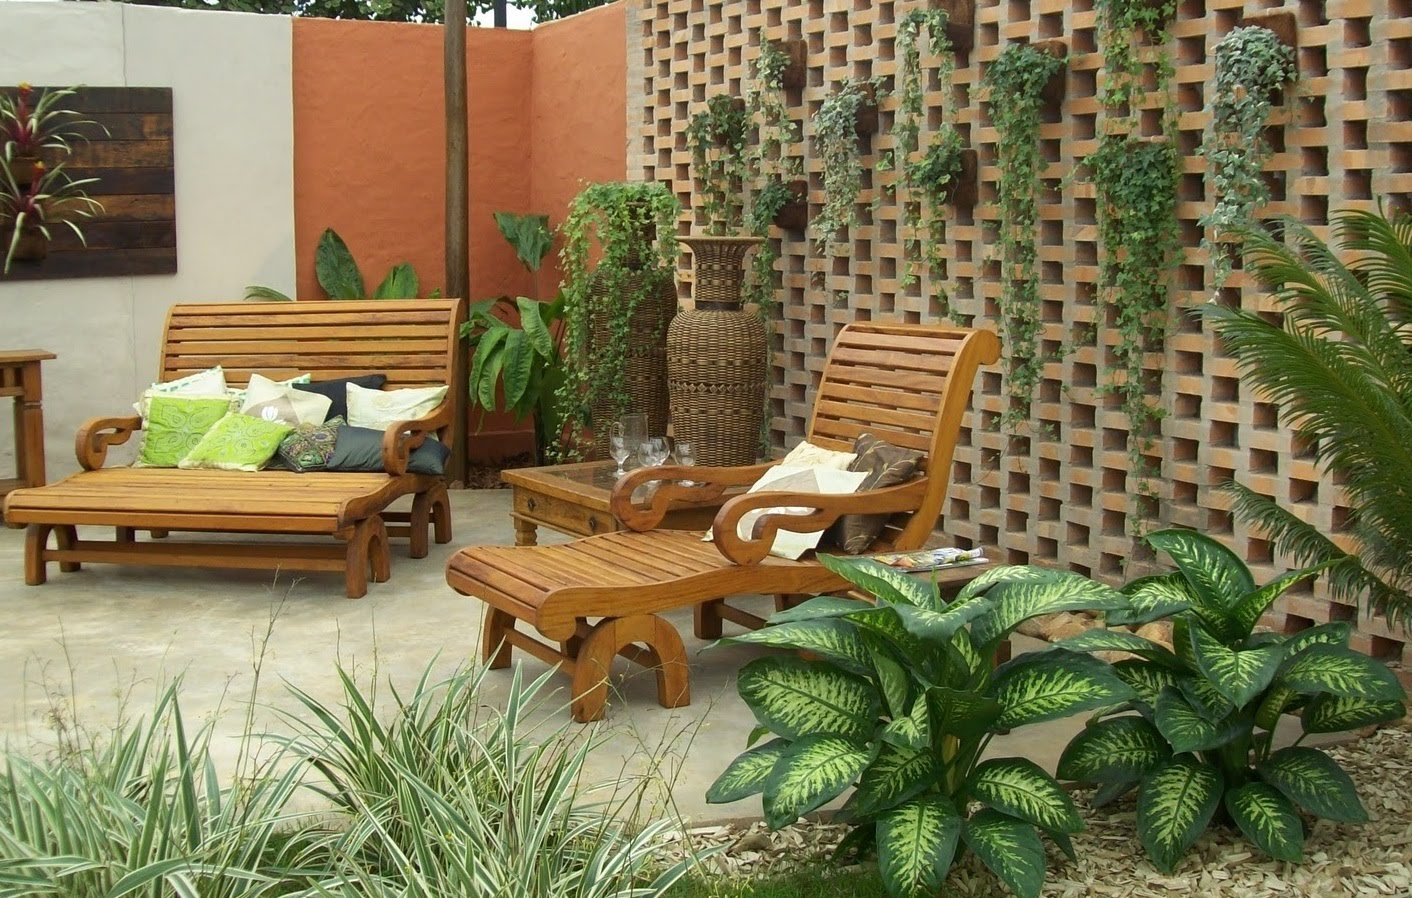 Jardines r sticos tendencia e ideas hoy lowcost for Ideas para decorar un jardin rustico